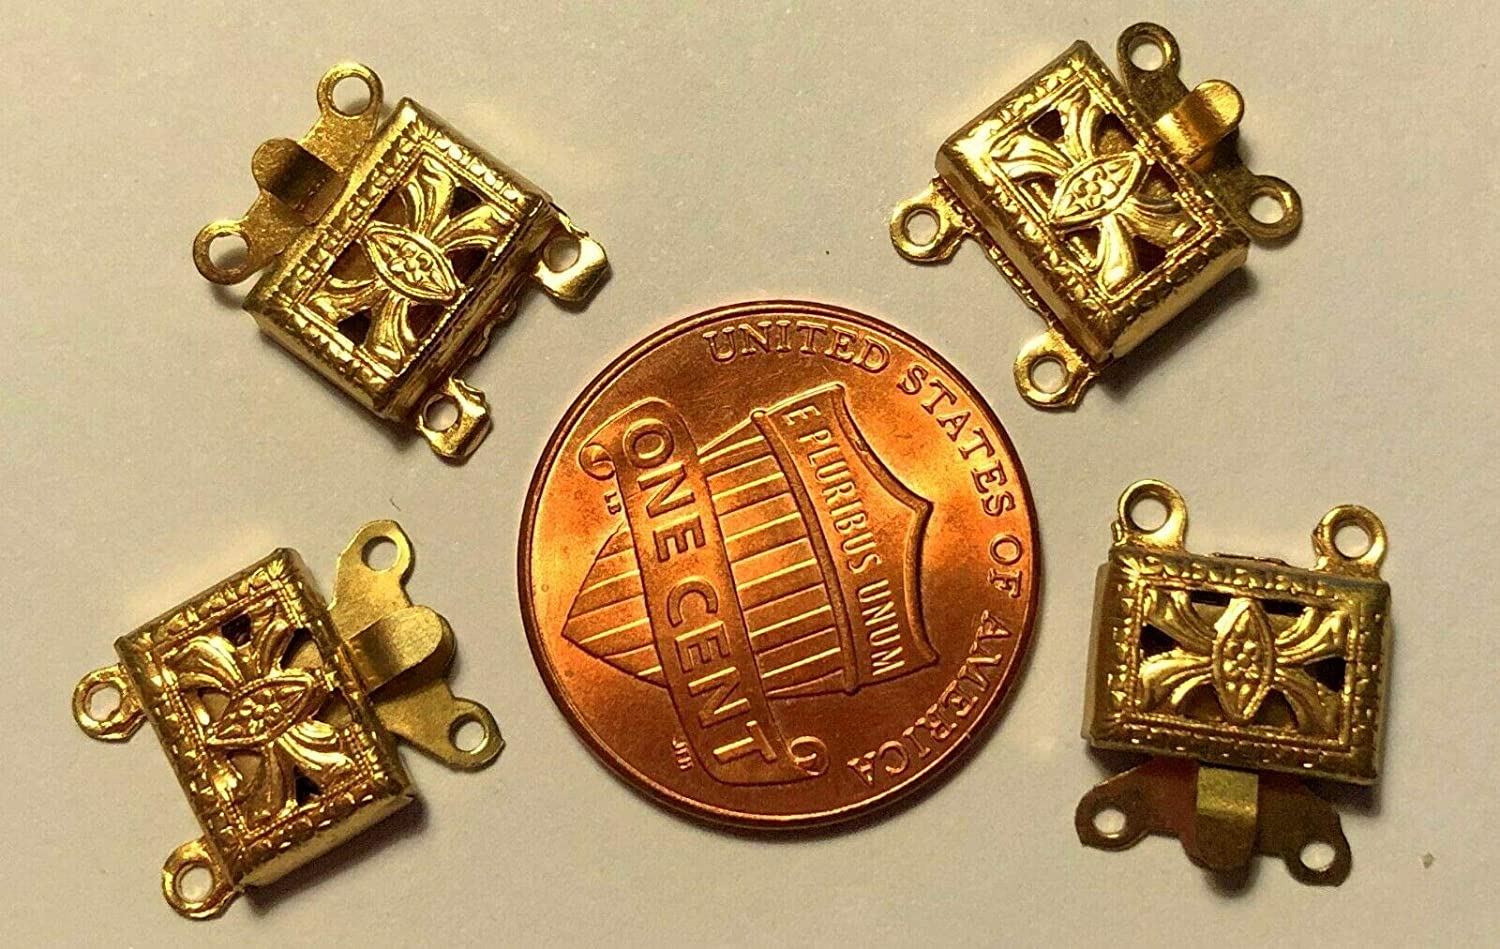 Save money Lot of 4 Gold Tone Metal Beauty products 2 Strand Long Box 9.8mm Clasps 7.3mm